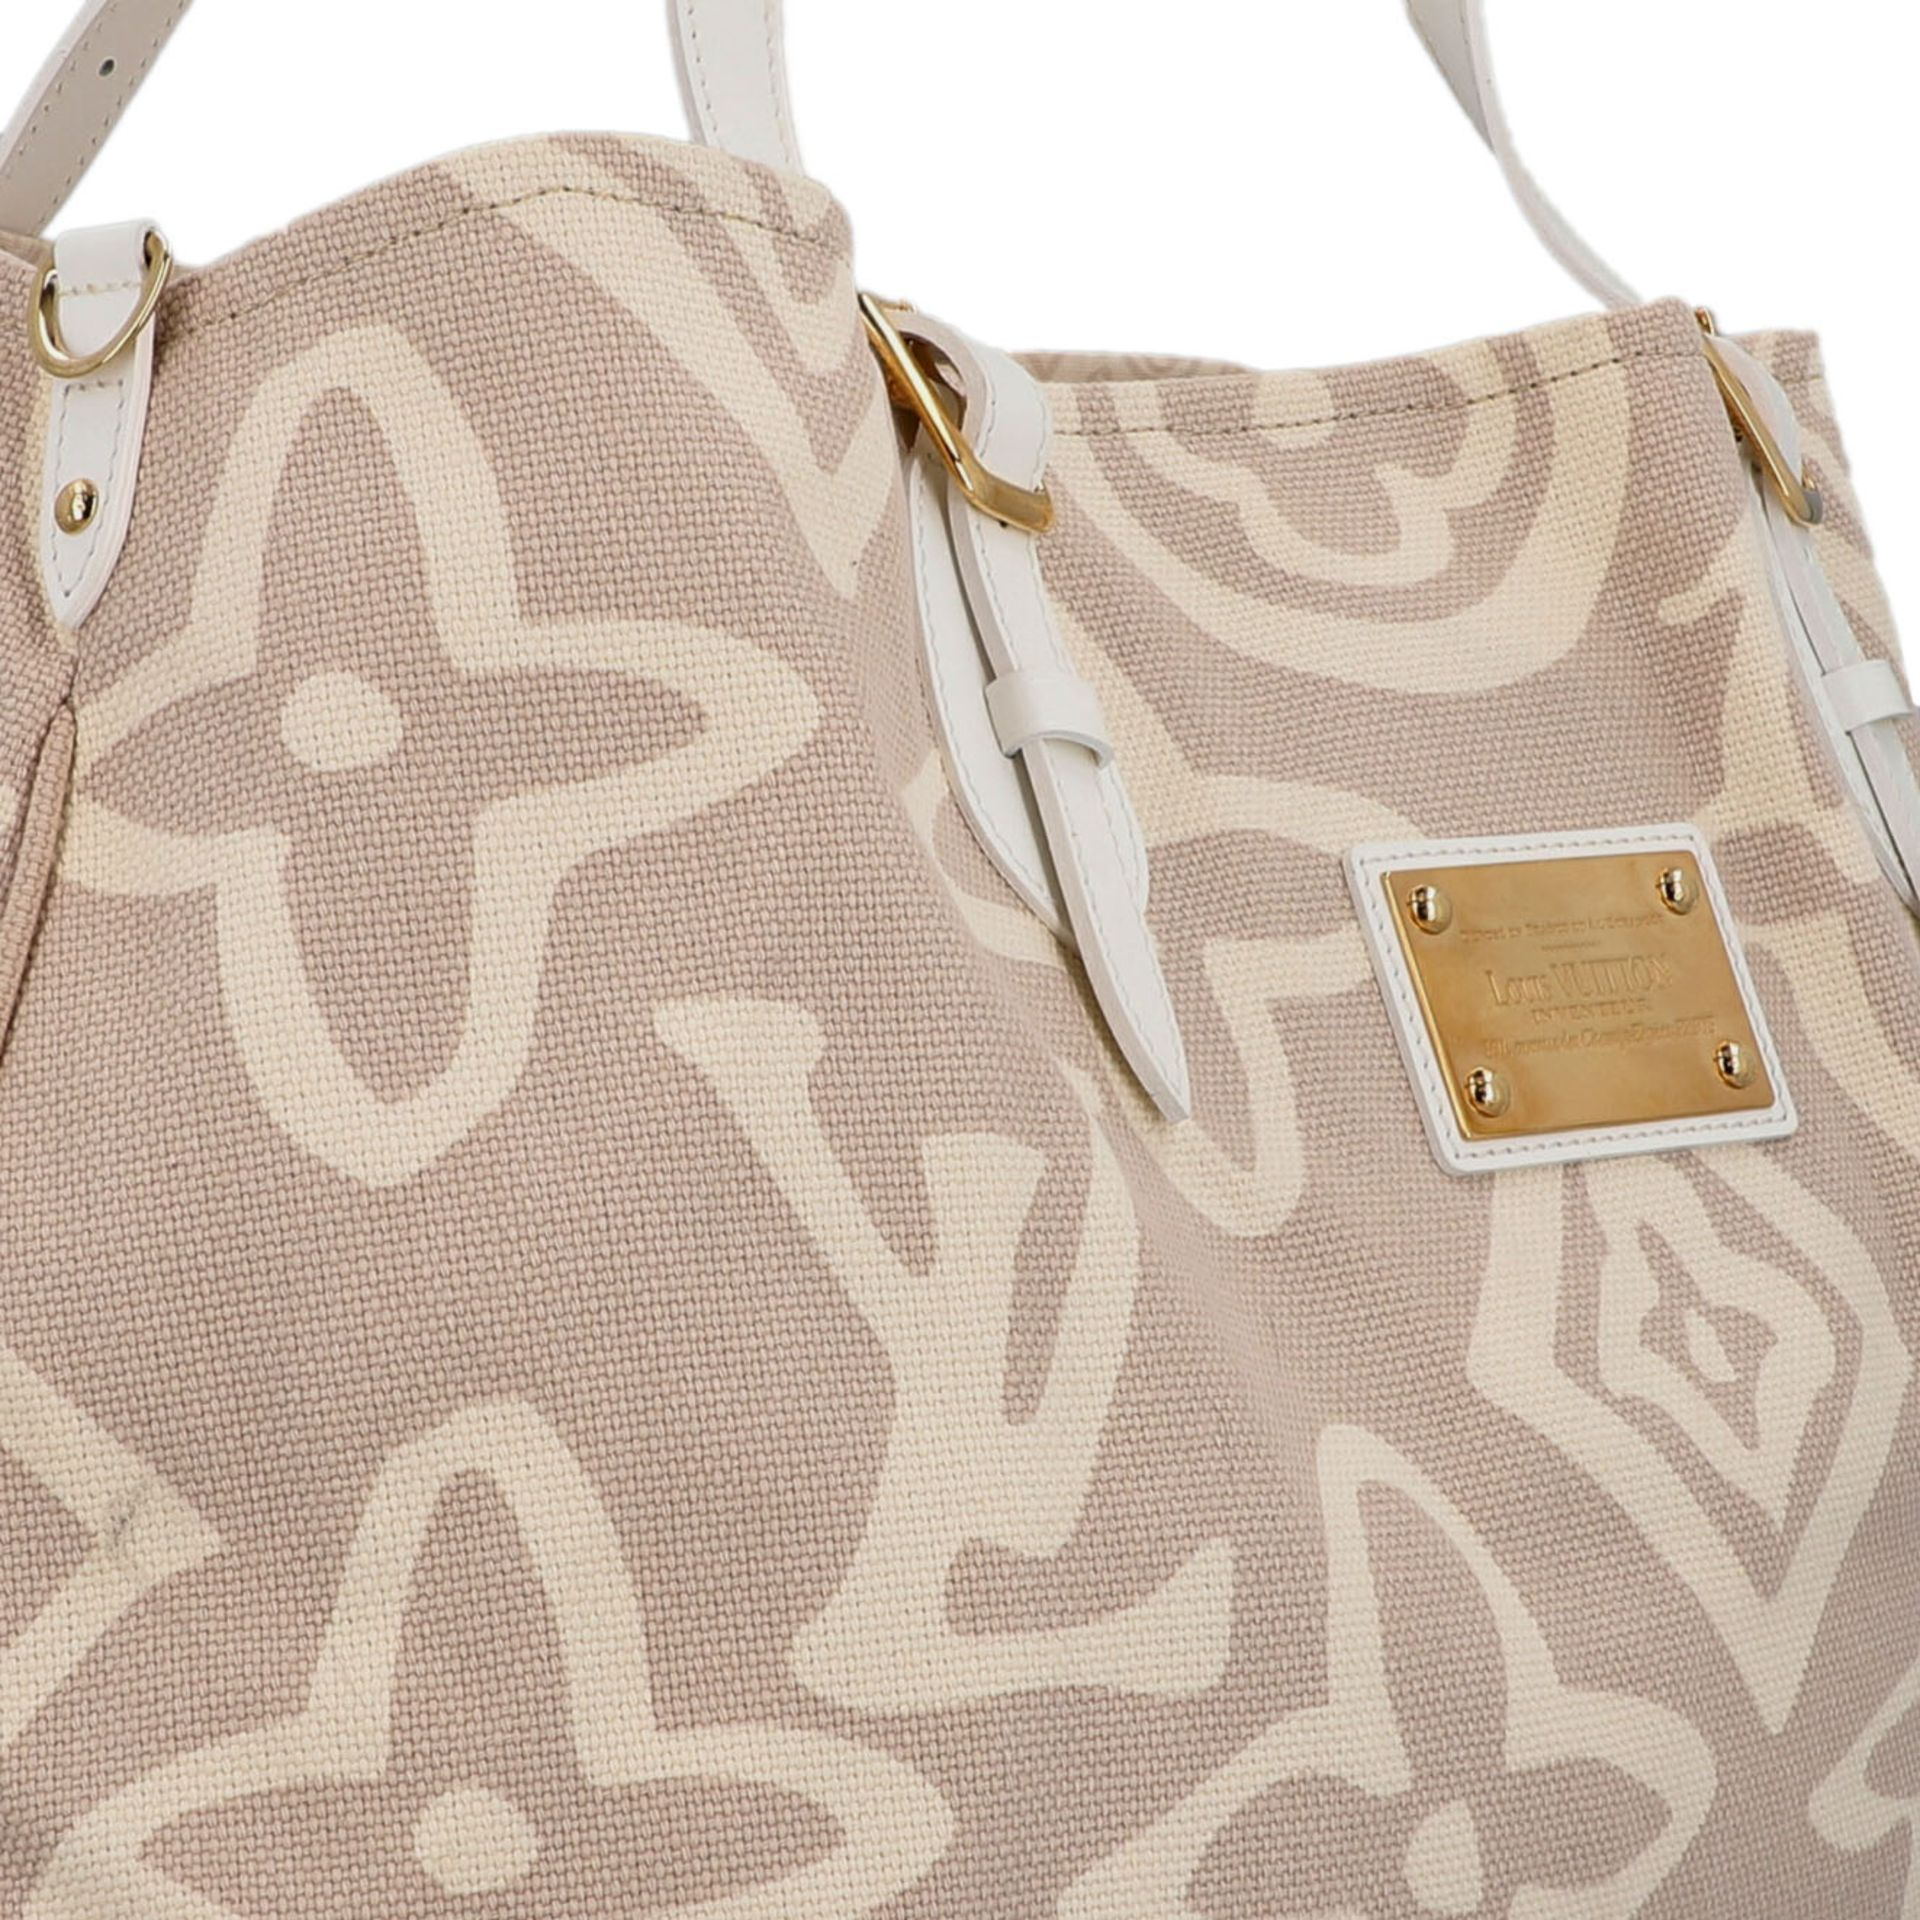 "LOUIS VUITTON Shopper ""TAHITIENNE GM"", Koll.: 2008 Designed by Marc Jacobs, inspiriert - Image 8 of 9"